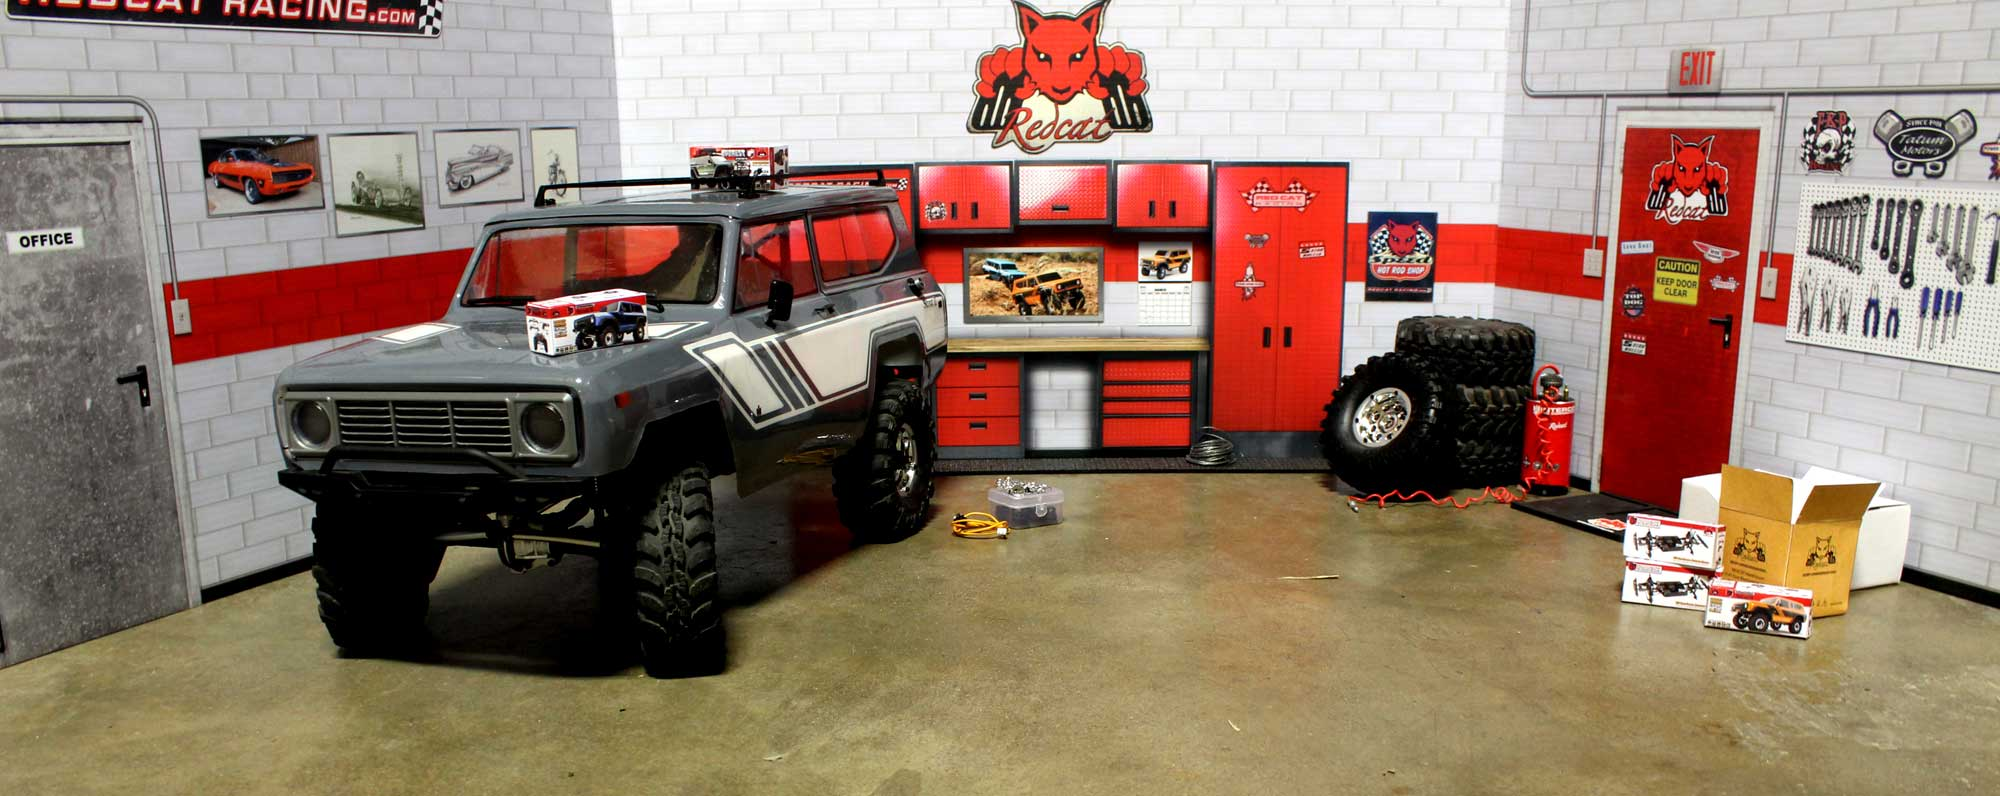 Redcat Racing Offers Up Free Papercraft Scale Accessories for Your R/C Garage